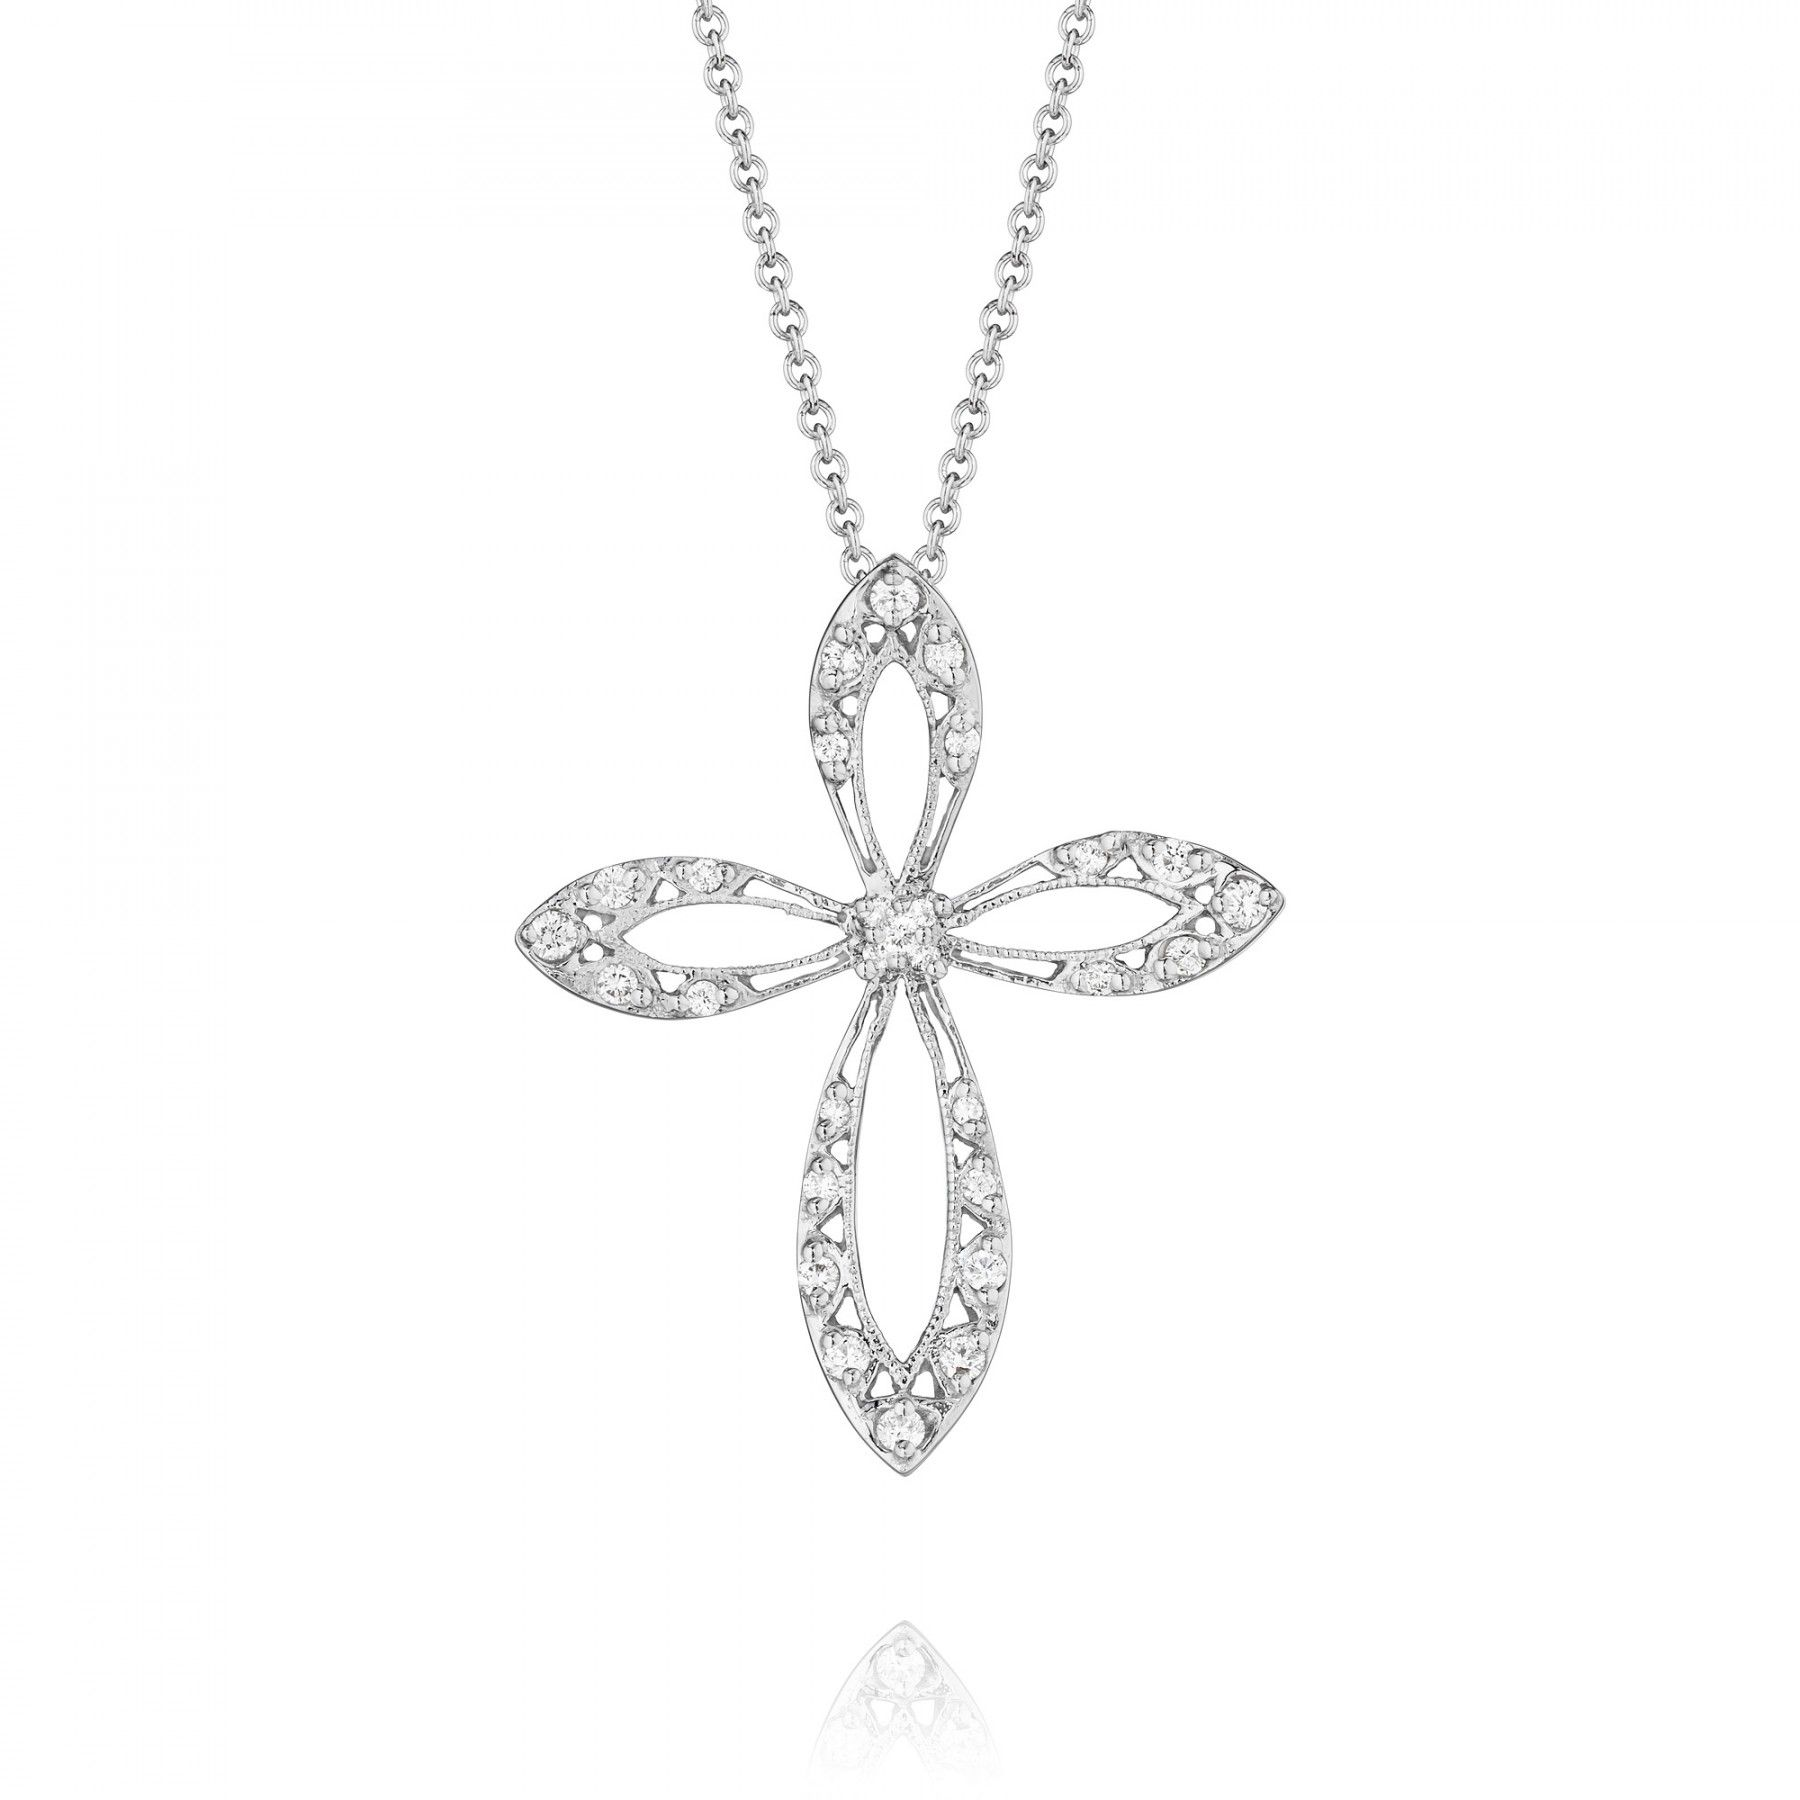 Style FP564 Classic Crescent Diamond Cross Necklace Jewelry